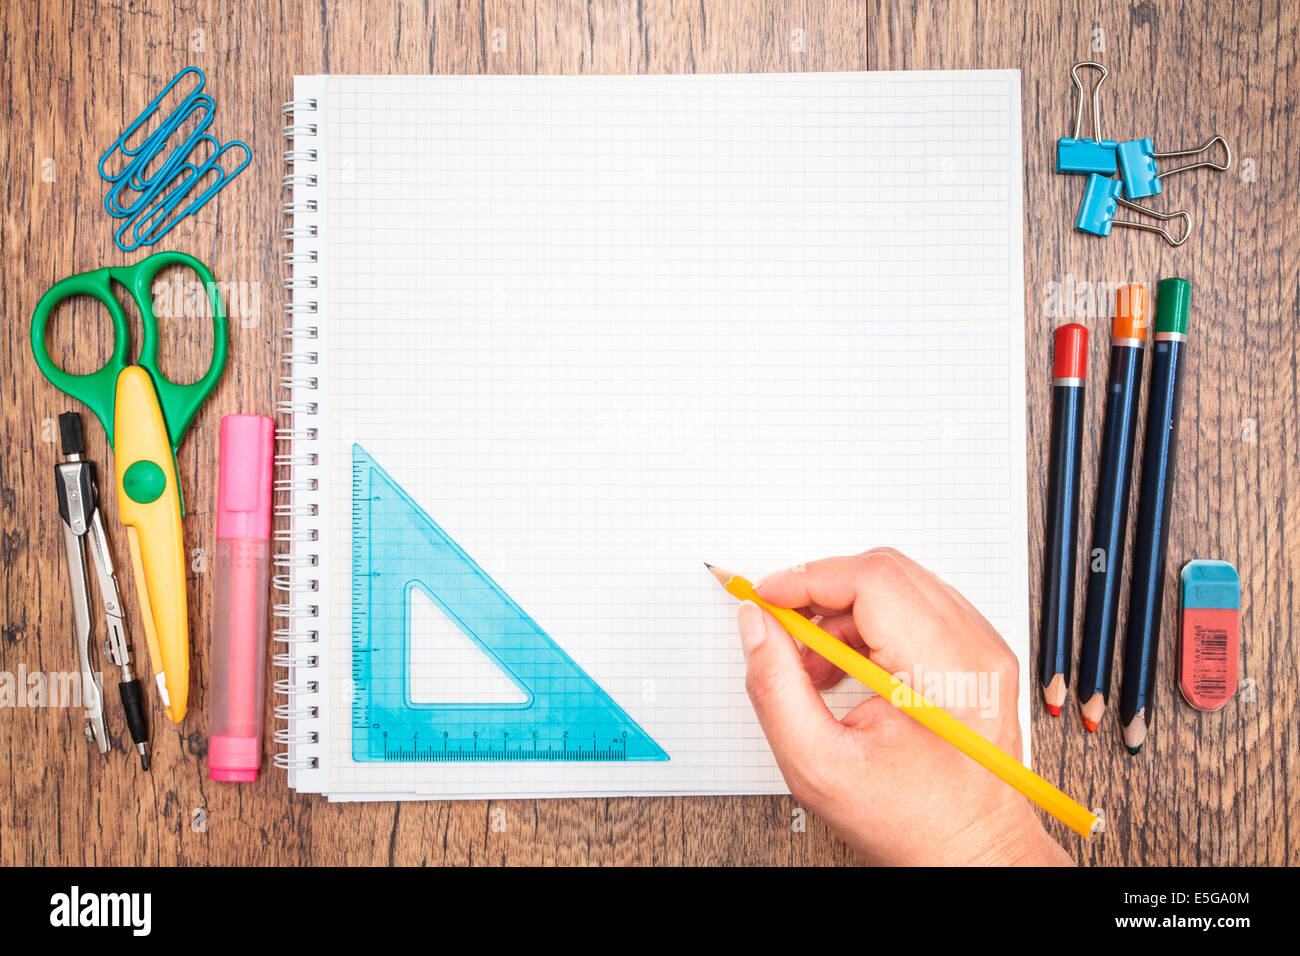 Top View Of School Accessories On A Desk   Stock Image